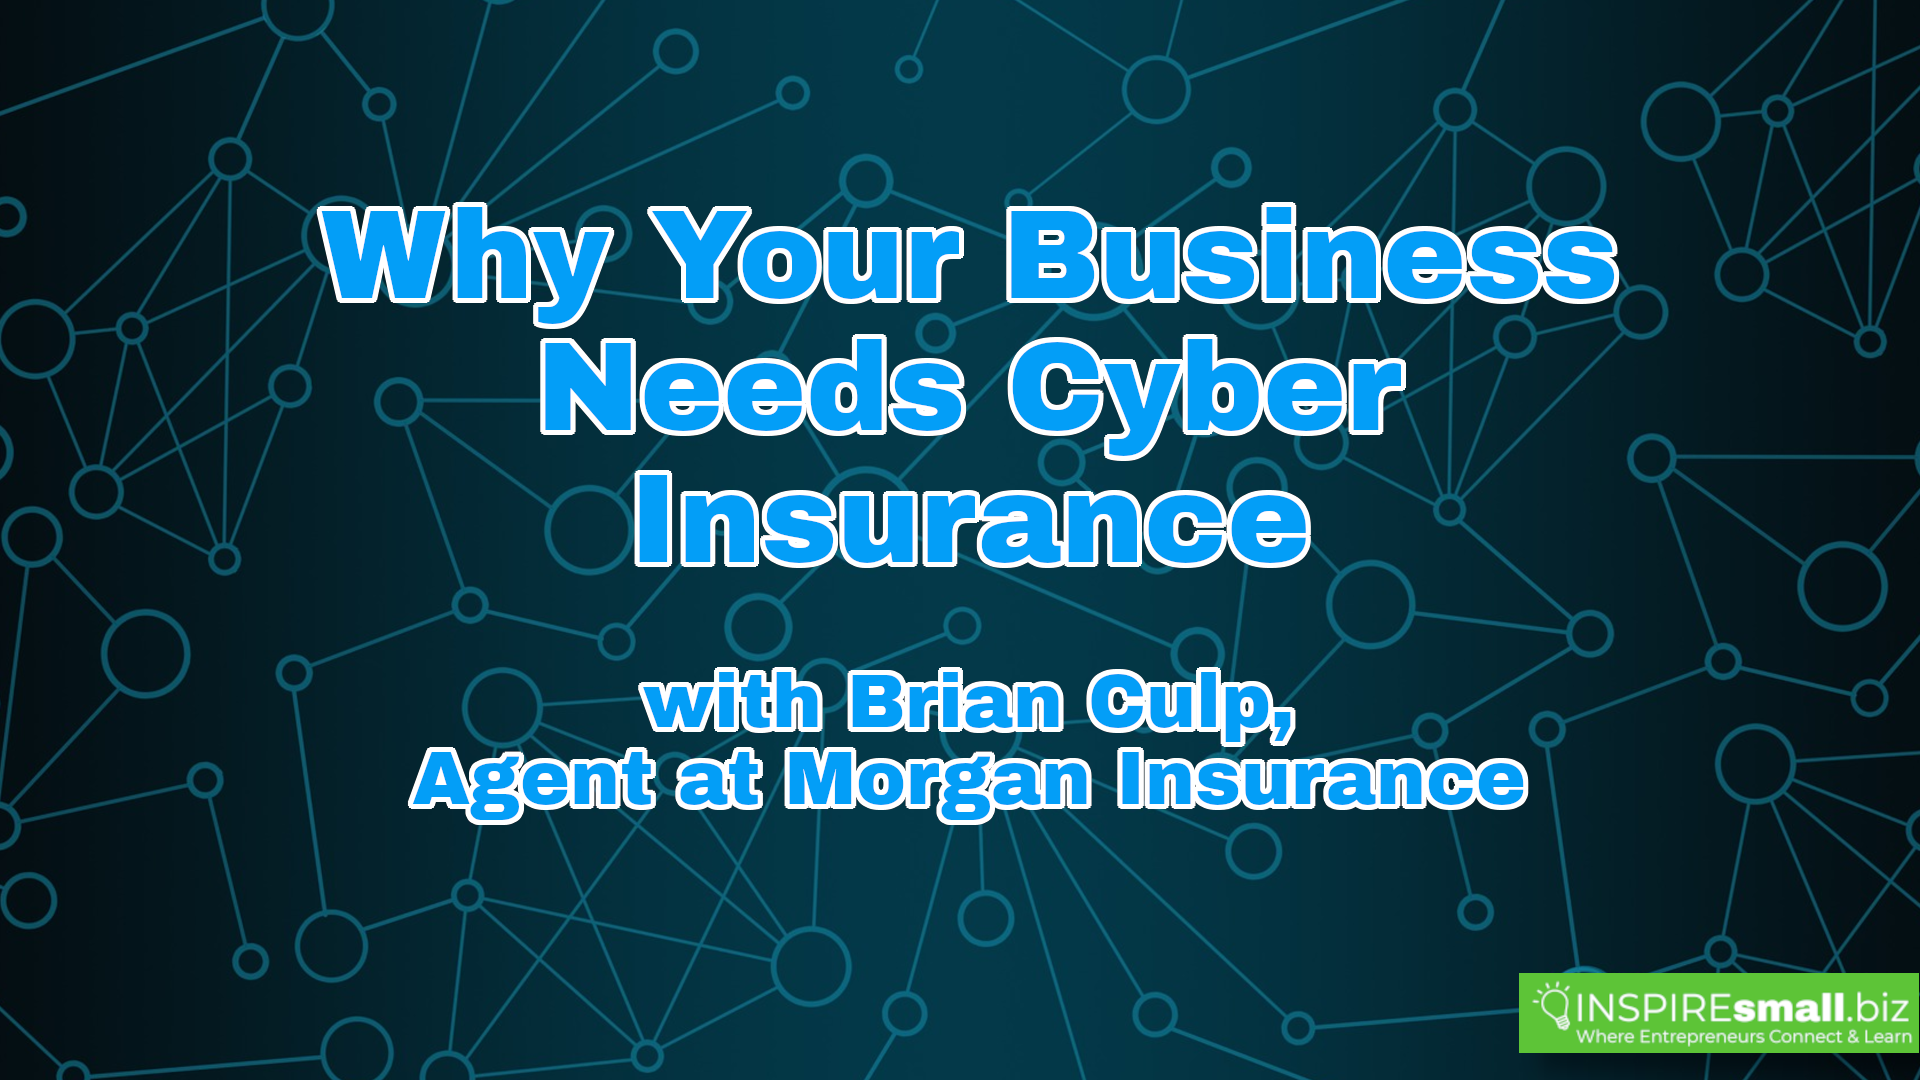 Why Your Business Needs Cyber Insurance - INSPIREsmall.biz Monday Networking